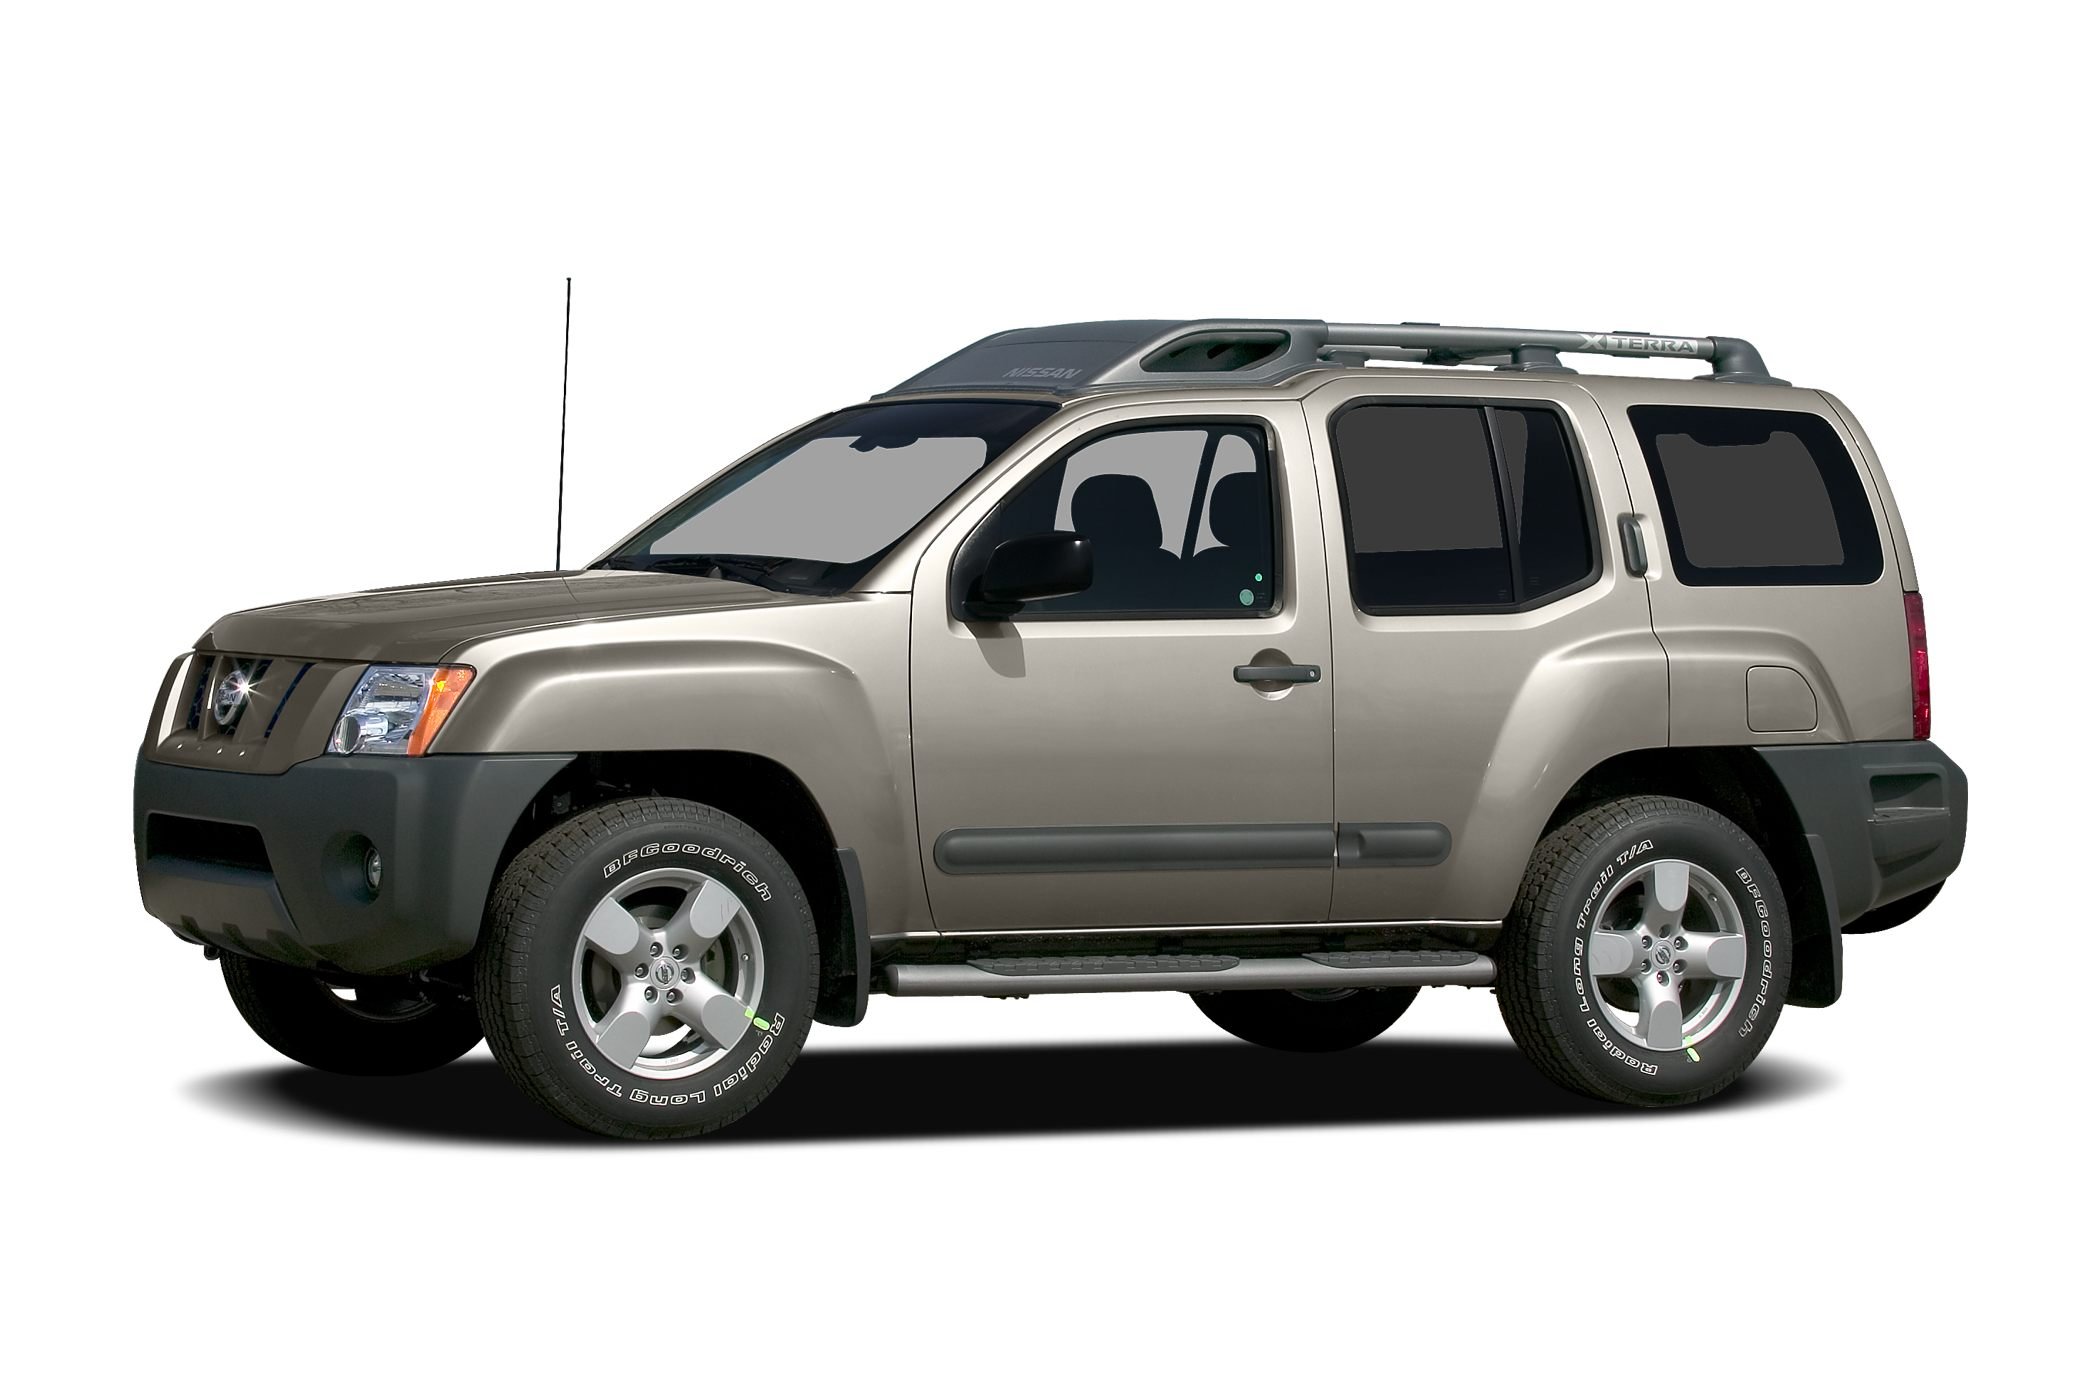 2008 Nissan Xterra SE SUV for sale in Ocoee for $11,900 with 86,578 miles.